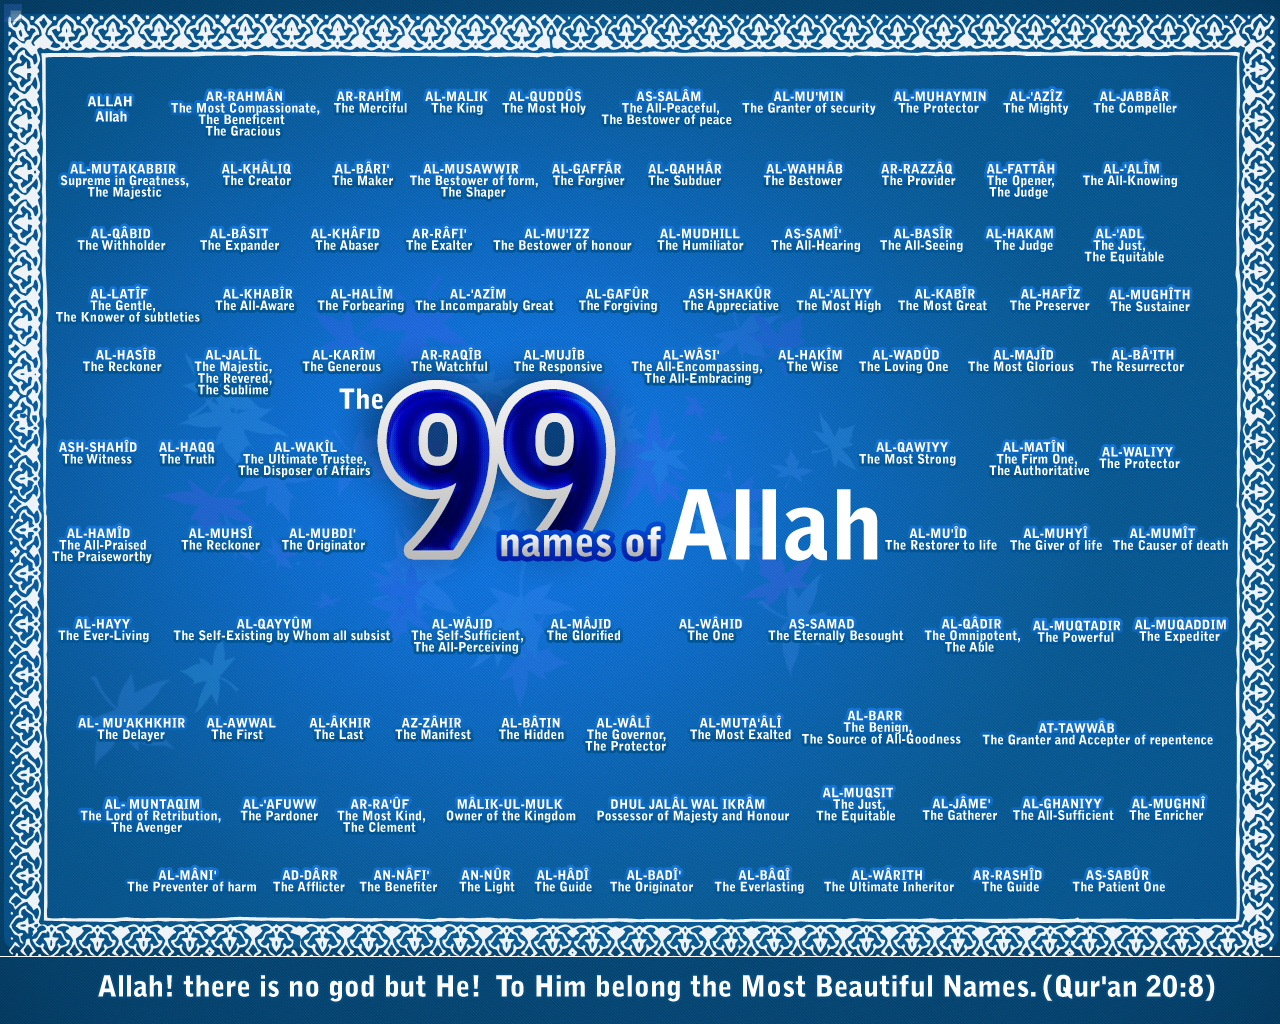 COOL IMAGES: 99 Names of Allah (swt)